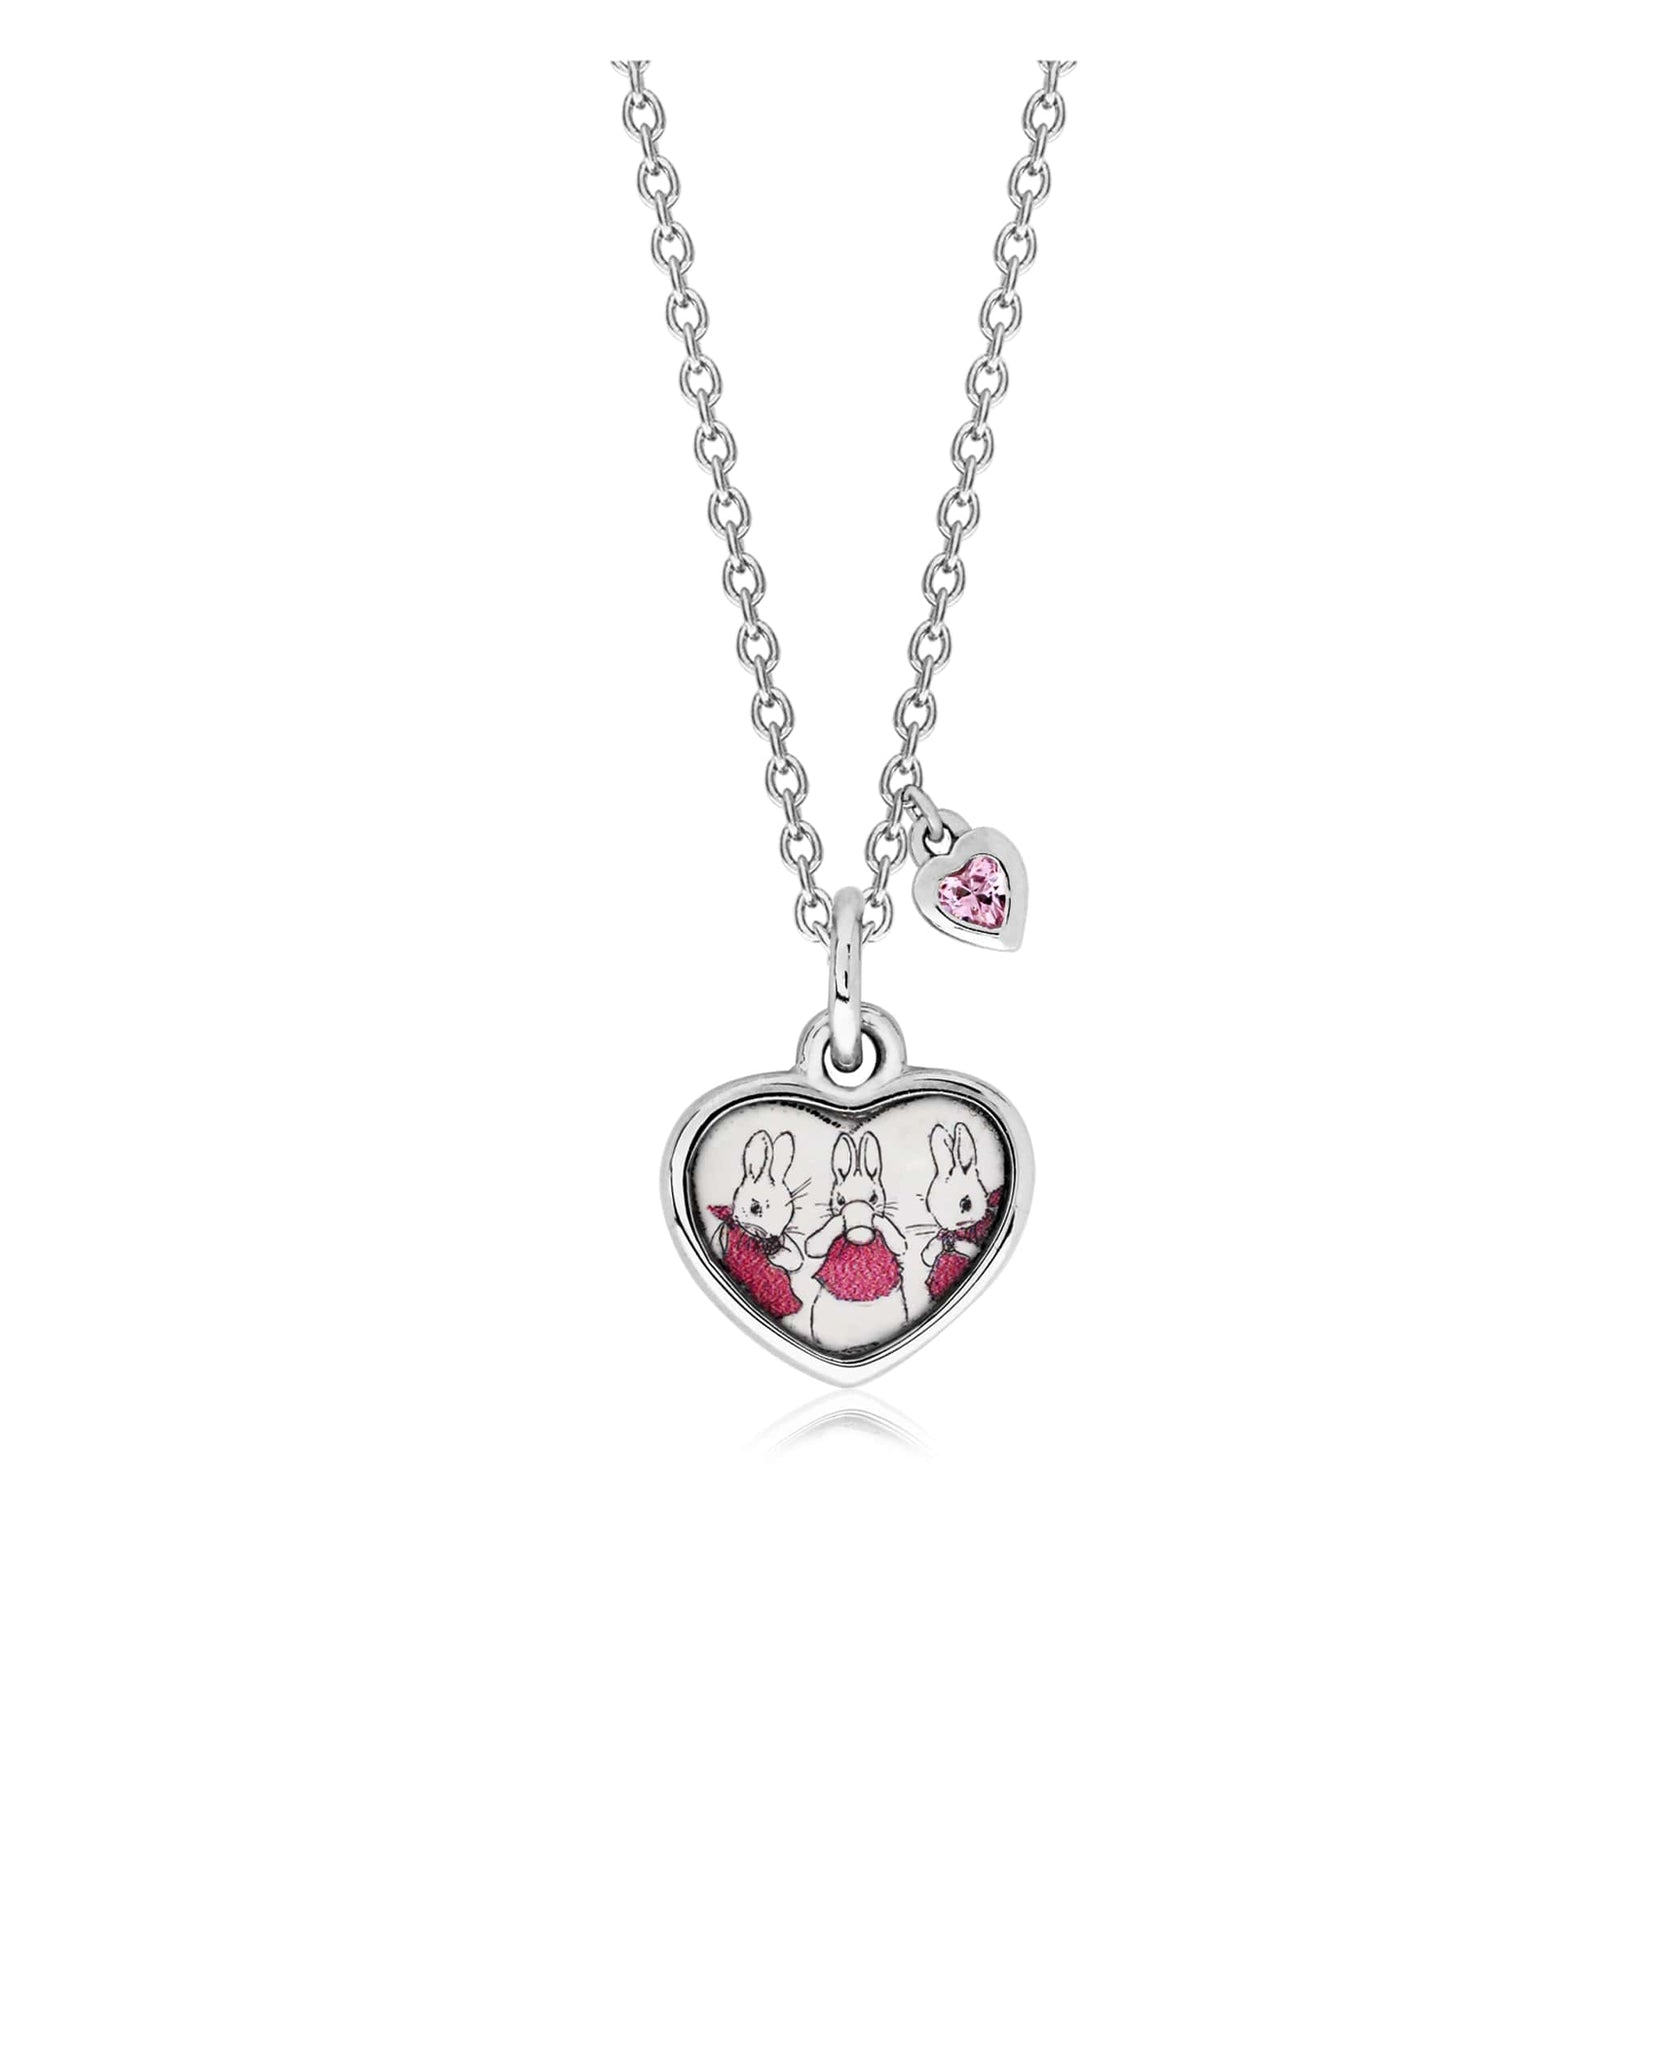 Beatrix Potter Sterling Silver Three Bunnies Cubic Zirconia Pendant Necklace - Rhona Sutton Jewellery